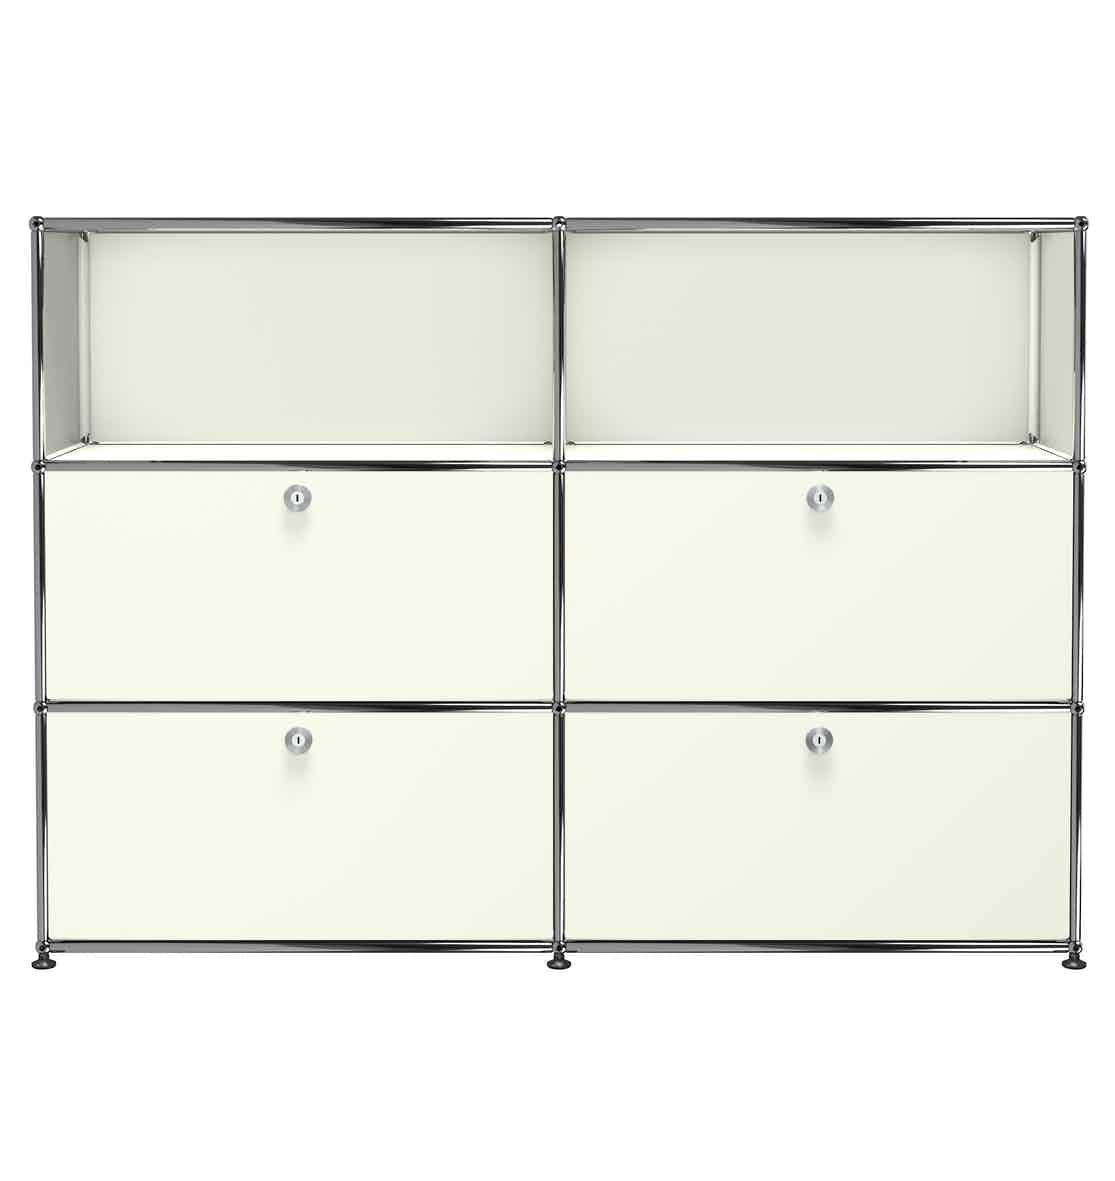 Usm-quick-shop-Haller-Storage-G2A-white-haute-living